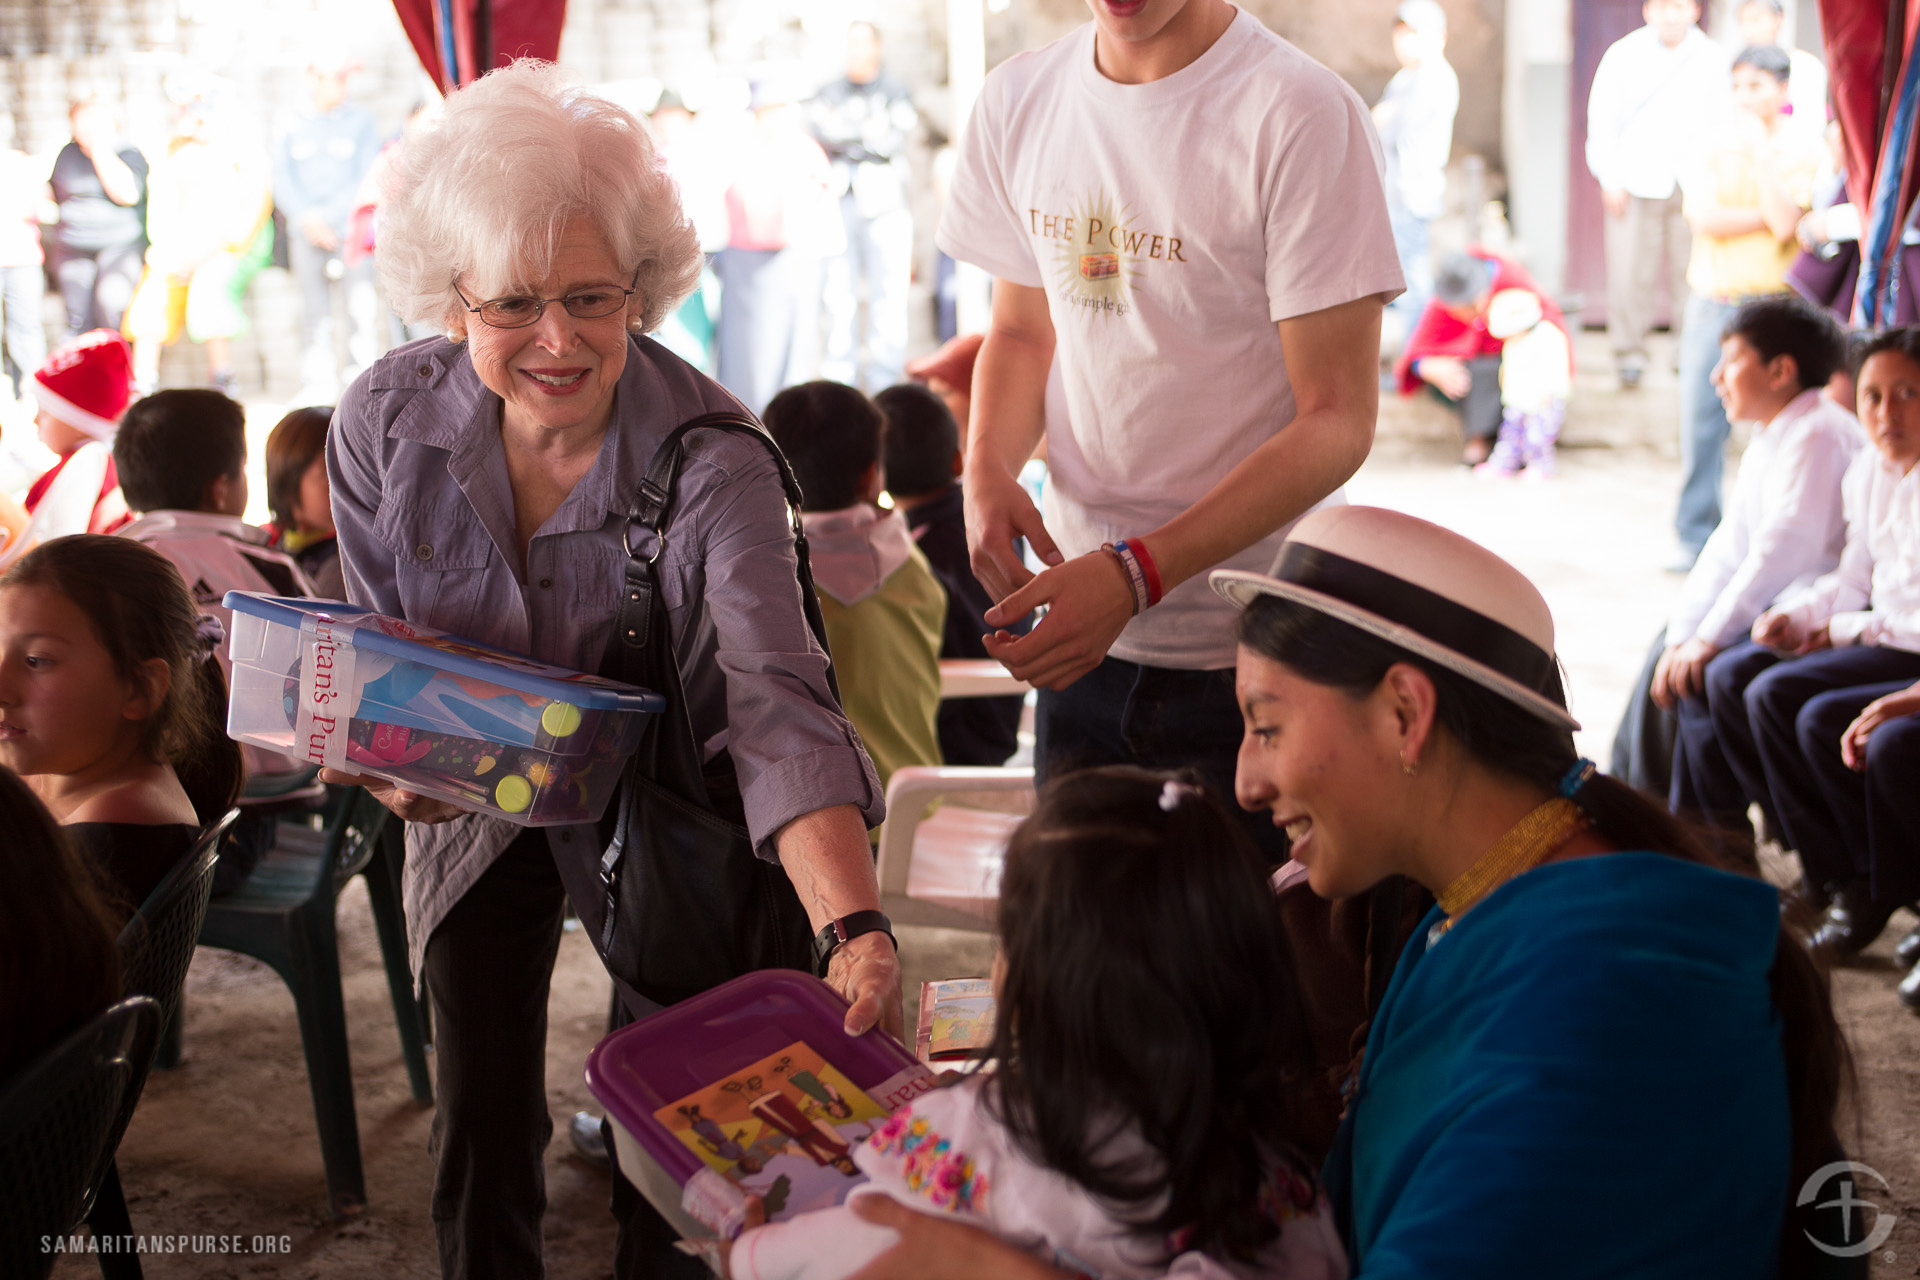 Ann Severance, Michael W. Smith's mother-in-law, helped pass out gifts.